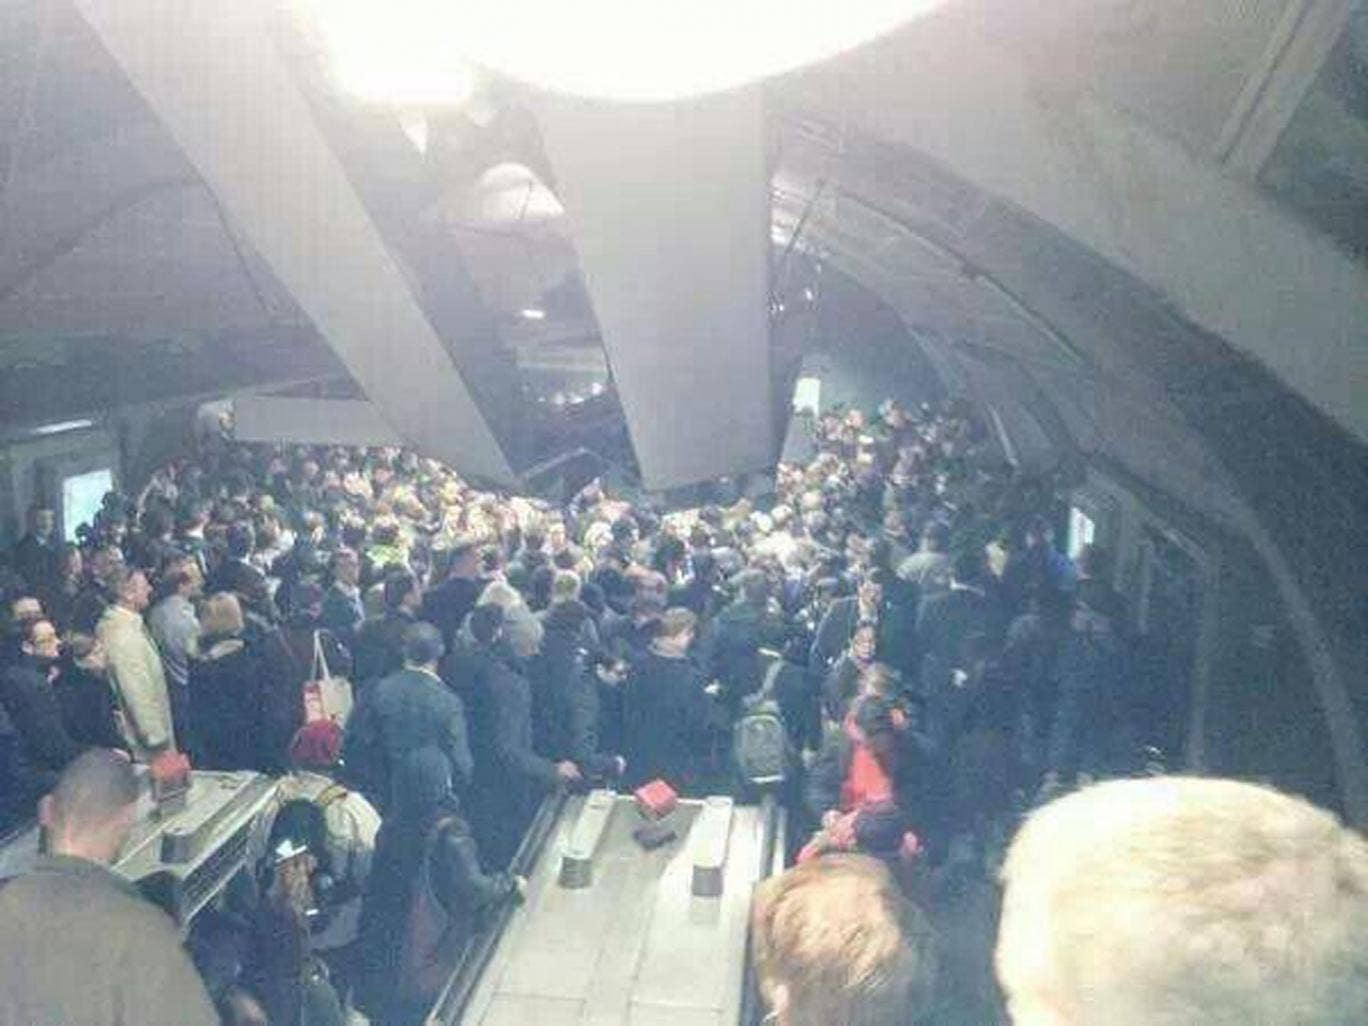 RMT said that this image showed 'lethal overcrowding' as a result of Tube services overstretched by union strike action